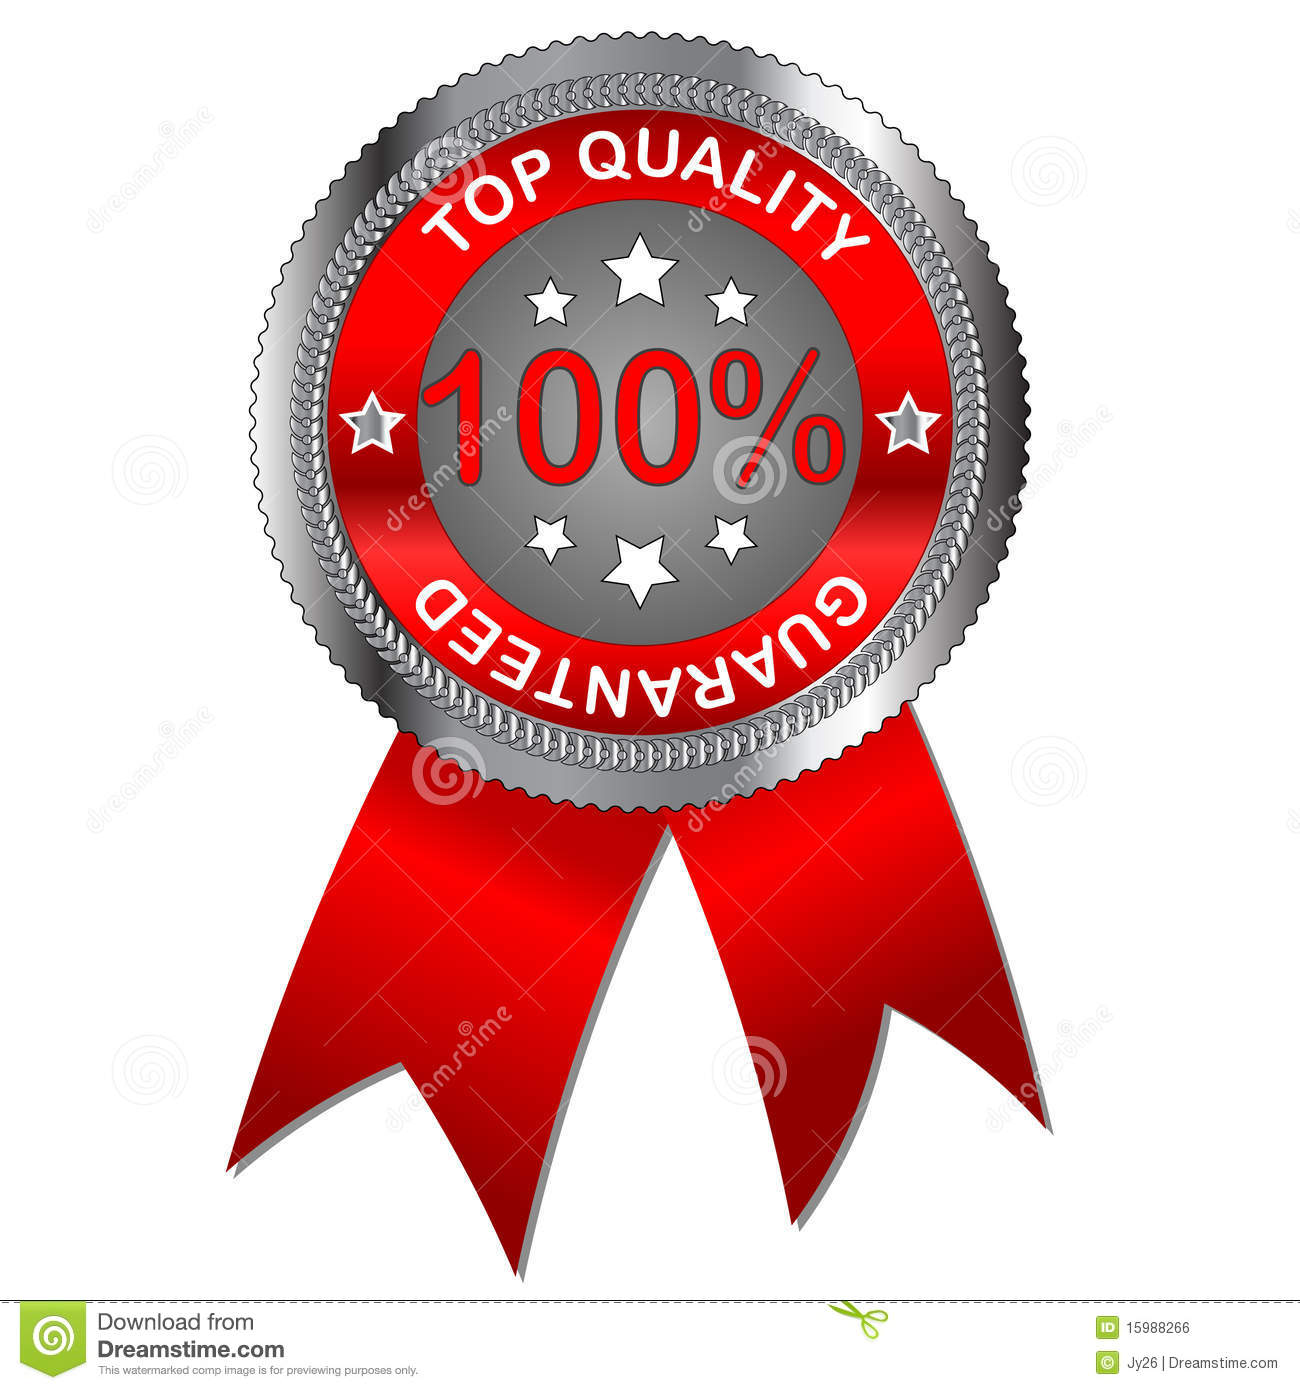 Top Quality Label Stock Vector. Illustration Of Hundred